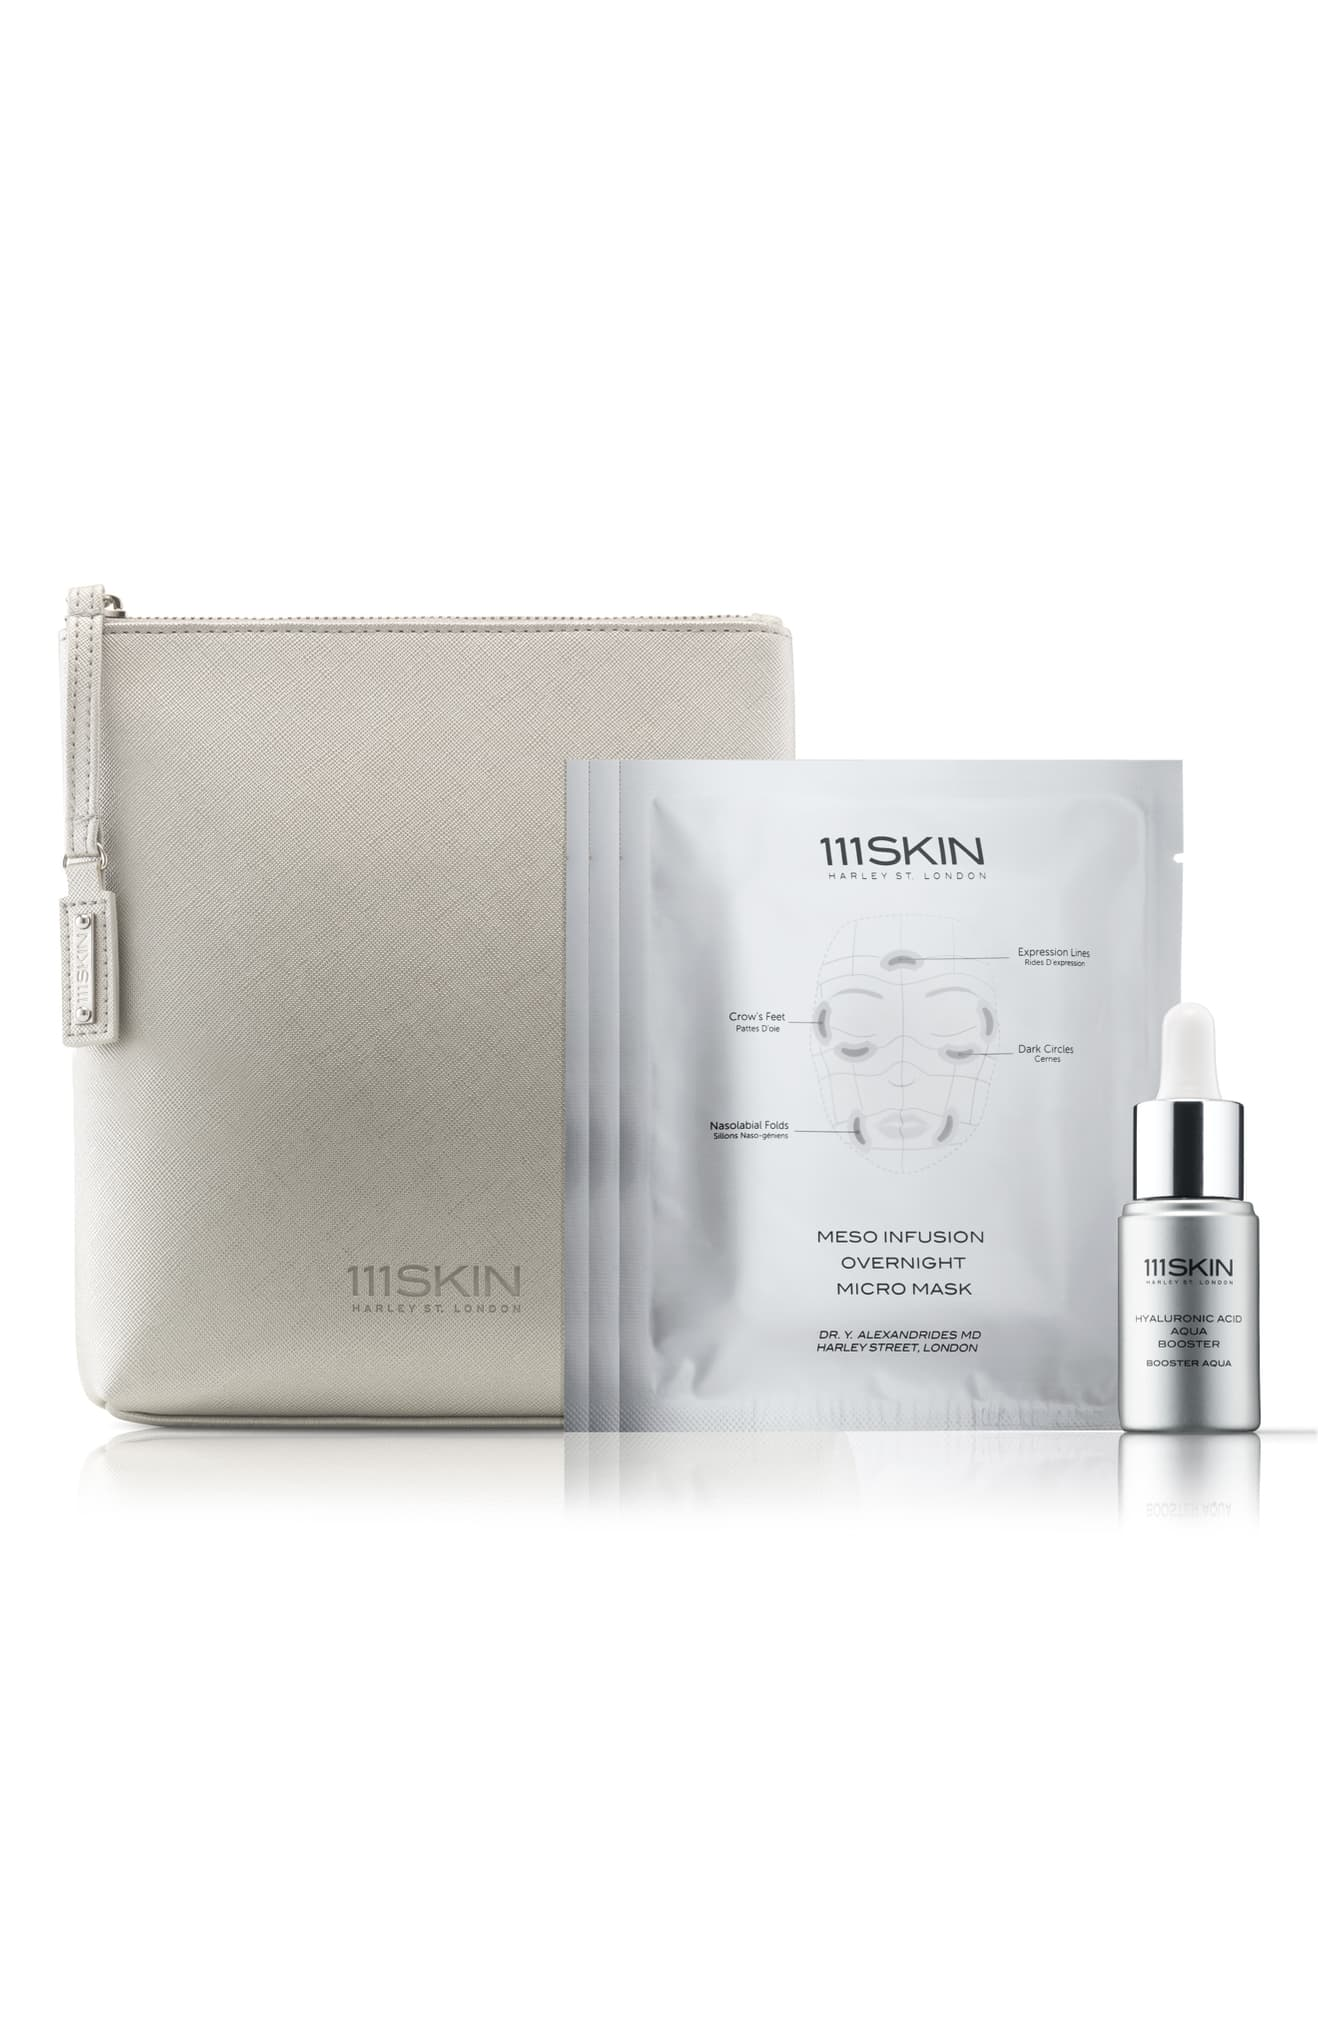 111SKIN The Hydration Restoring Bag Treatment Set